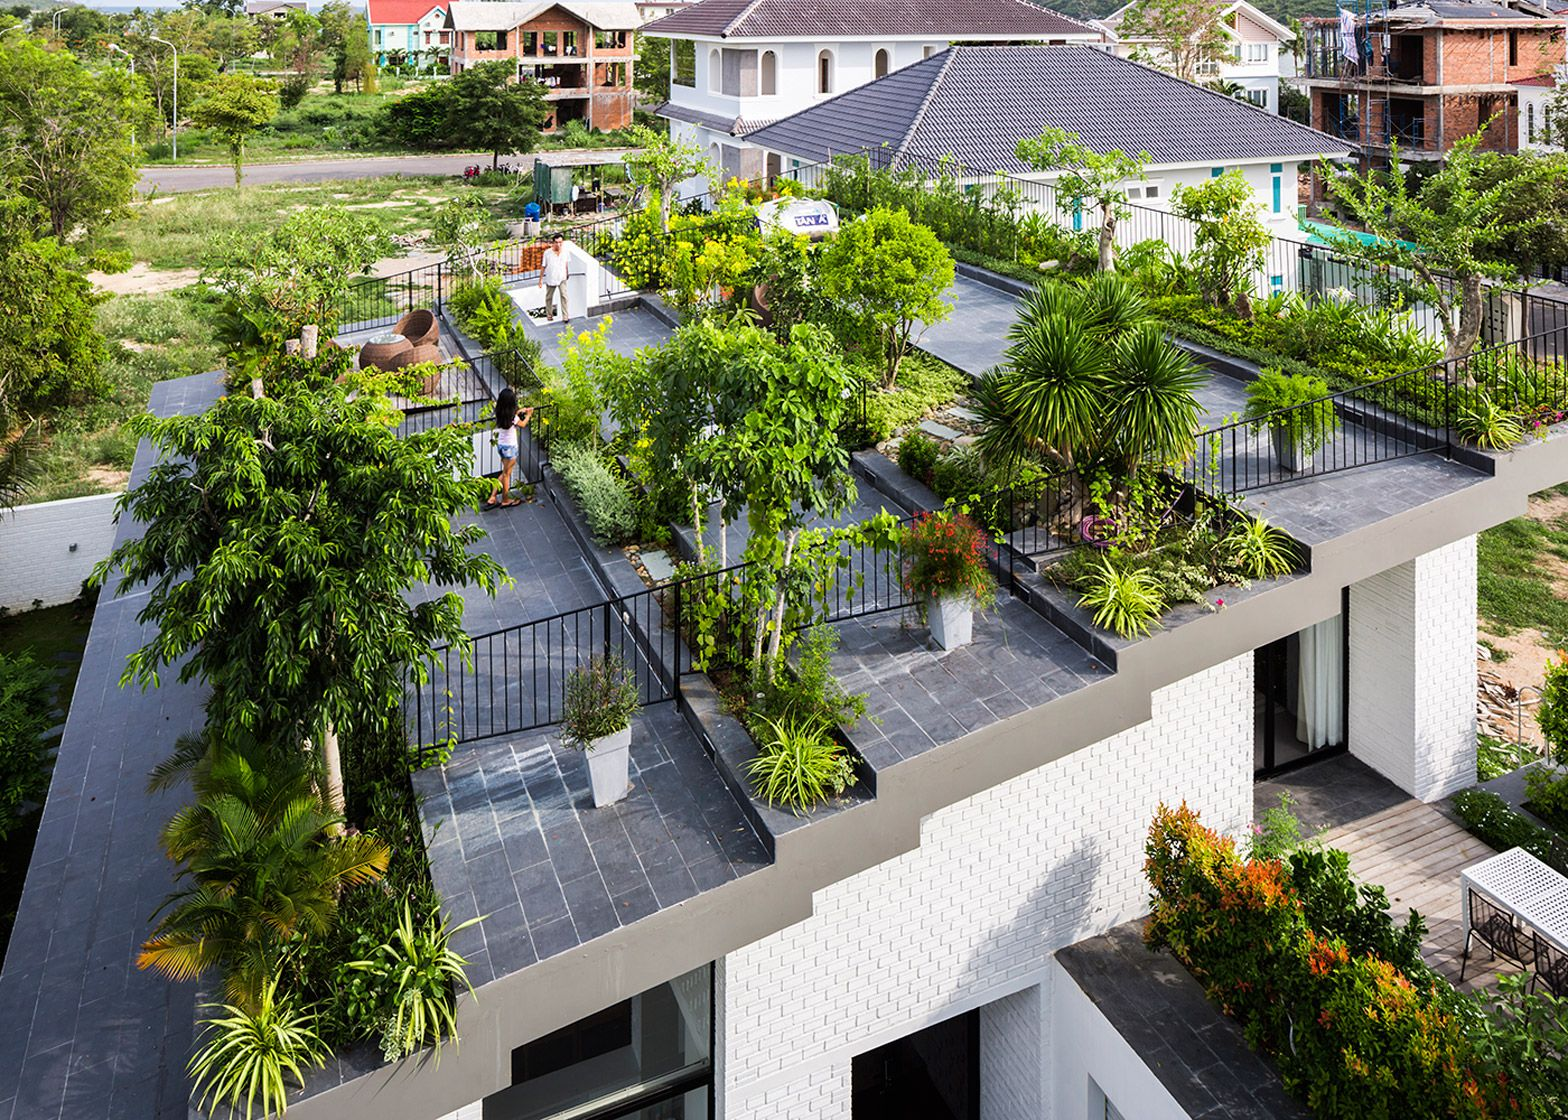 Stepped garden tops house by vo trong nghia and masaaki for House roof garden design